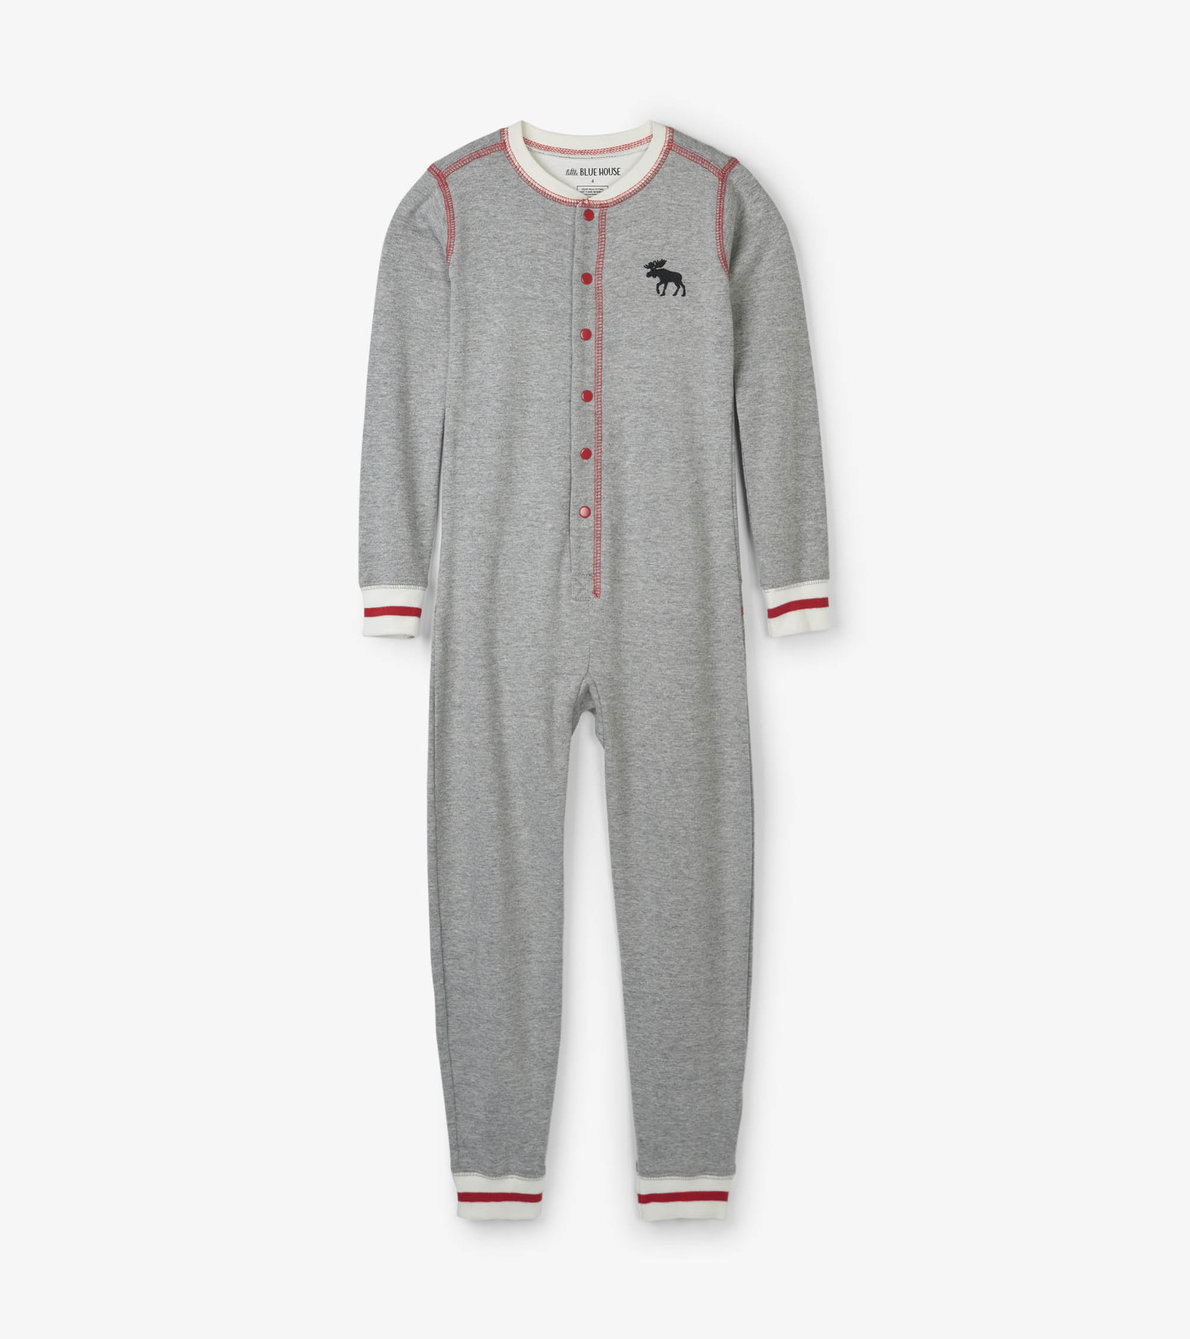 View larger image of Canadiana Moose Kids Union Suit